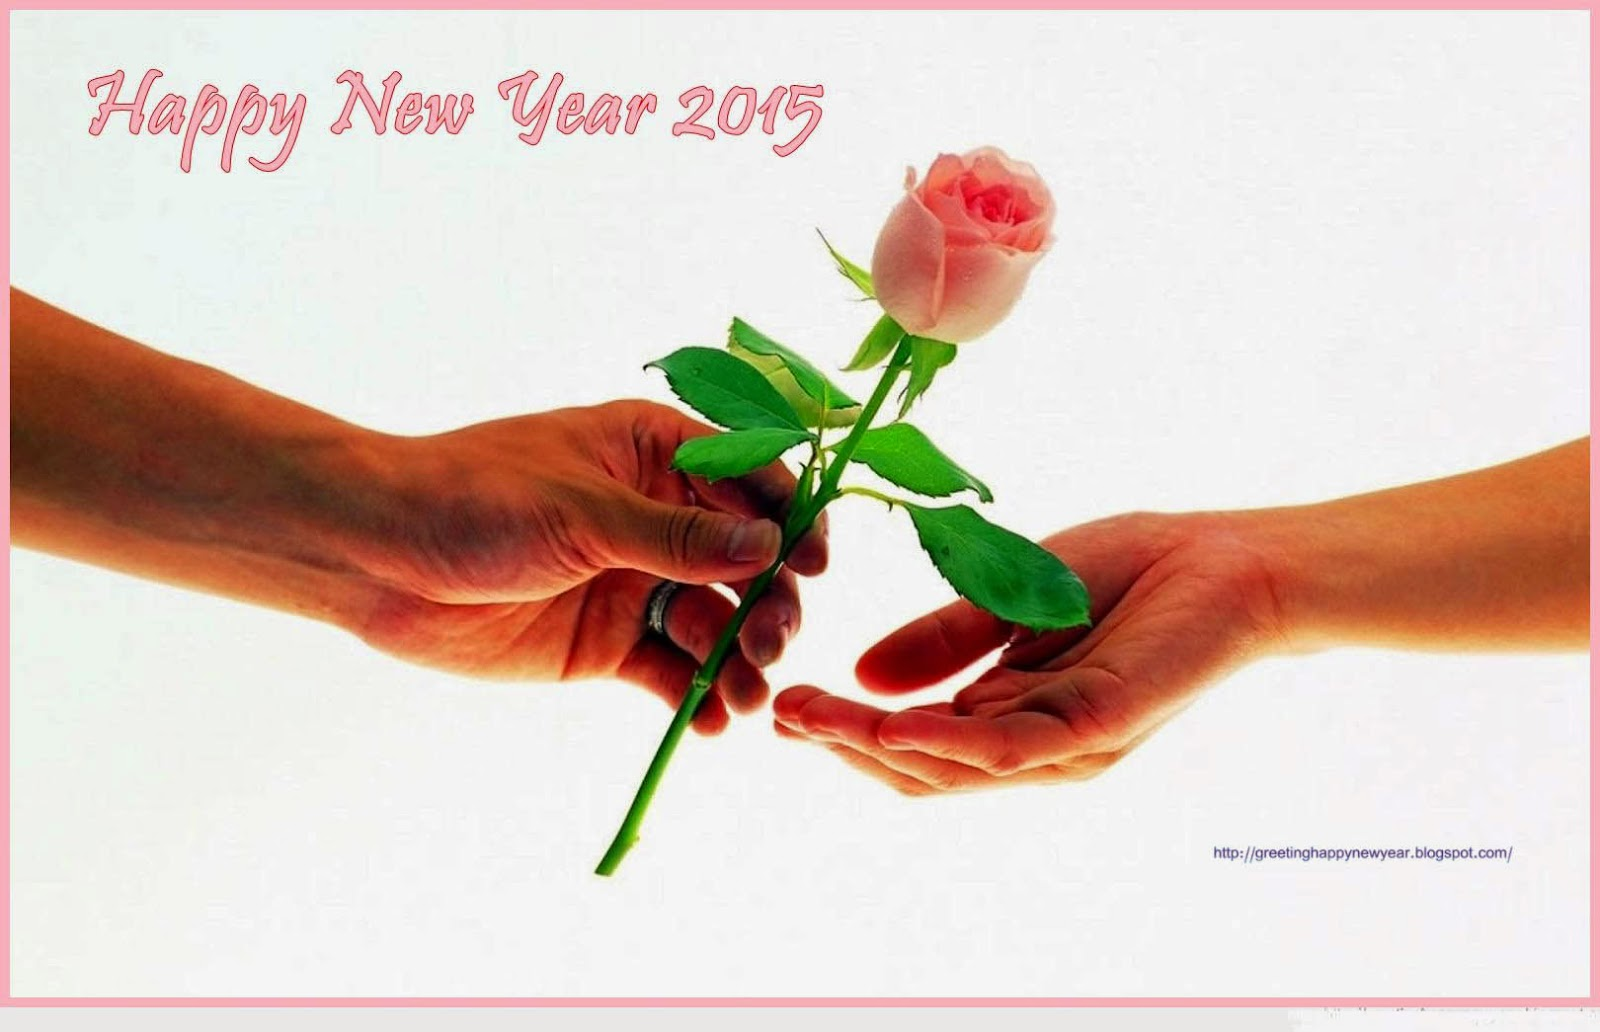 Happy New Year 2015 Gift Wallpaper - New Latest